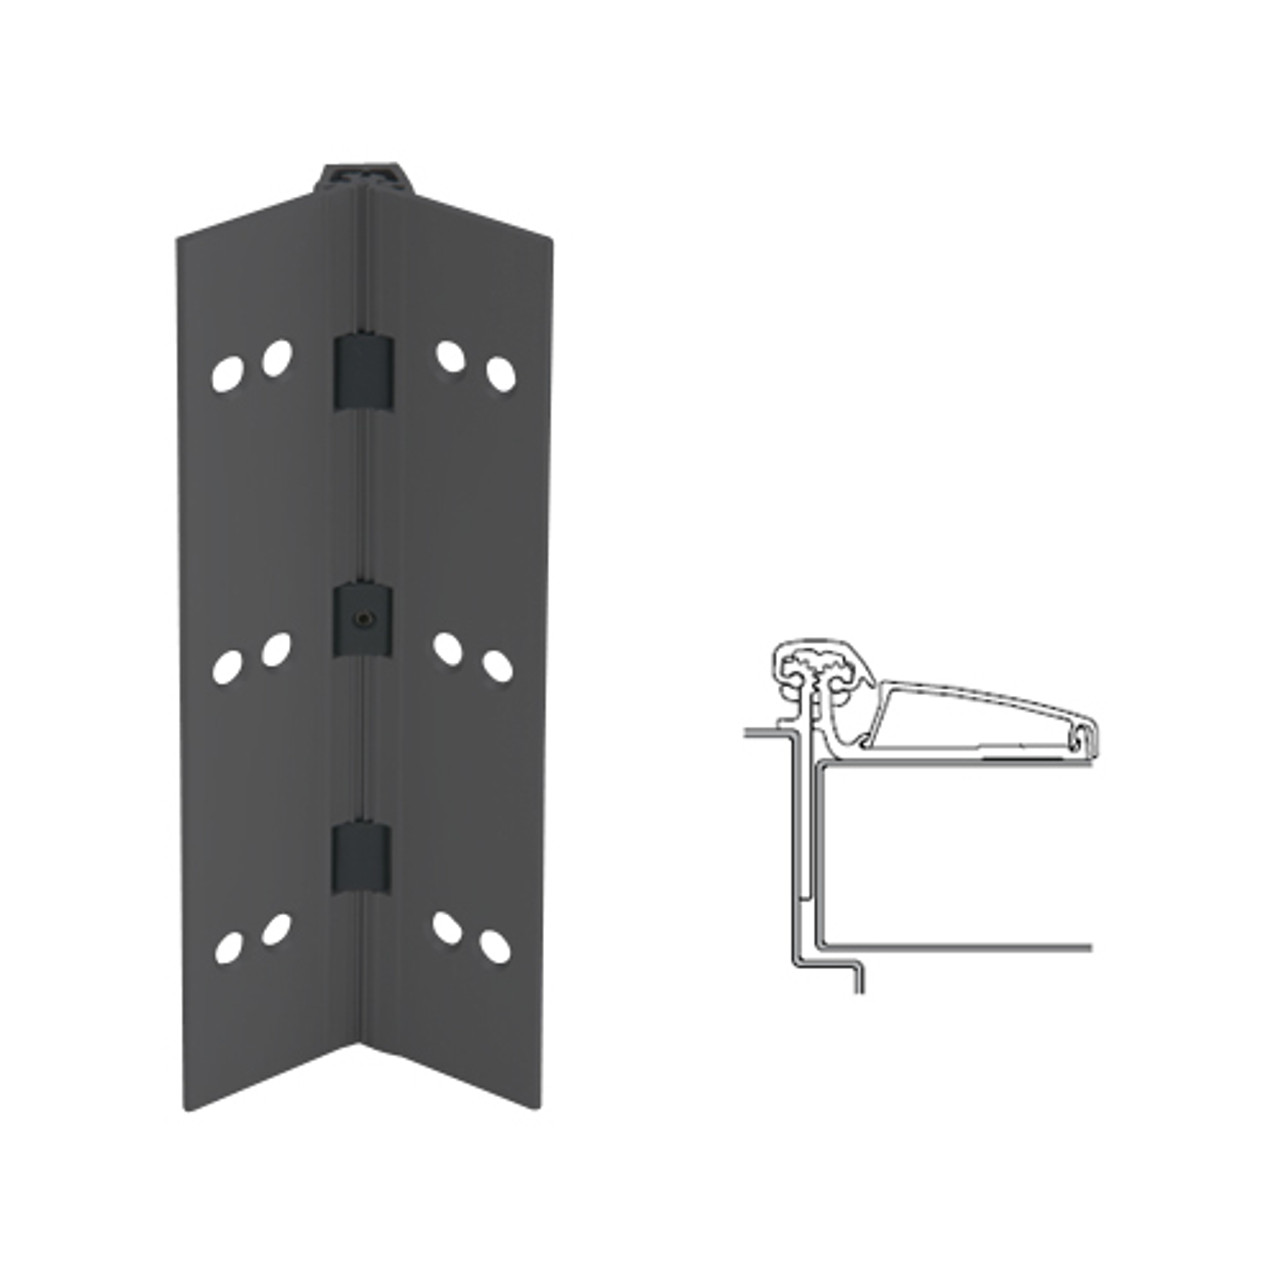 045XY-315AN-120-TEKWD IVES Adjustable Half Surface Continuous Geared Hinges with Wood Screws in Anodized Black